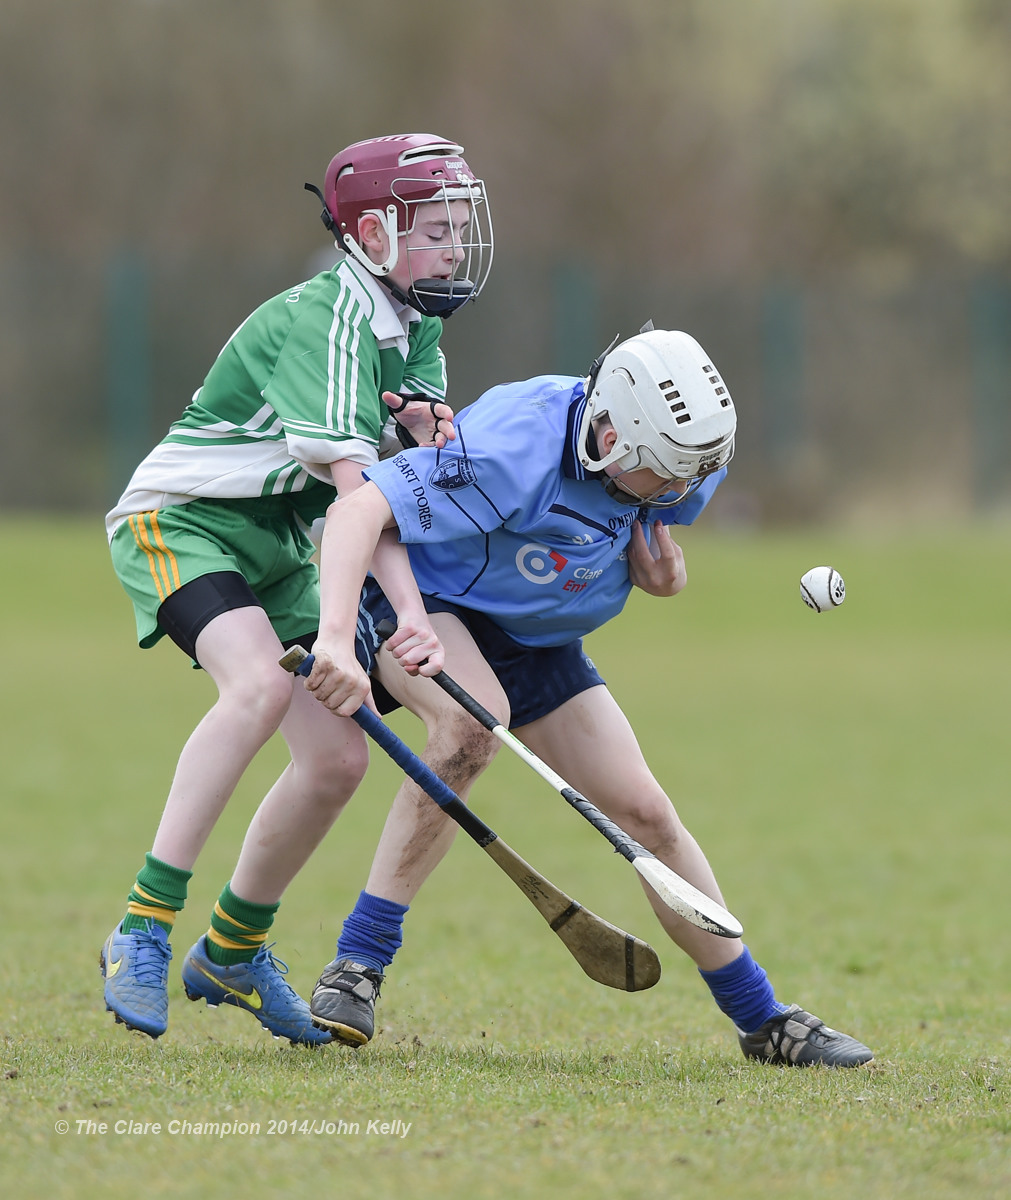 Dean Lynch of Ennistymon CBS in action against Shane Quinn Tuite of Scariff Community College during their Munster U-15 D final at Clarecastle. Photograph by John Kelly.